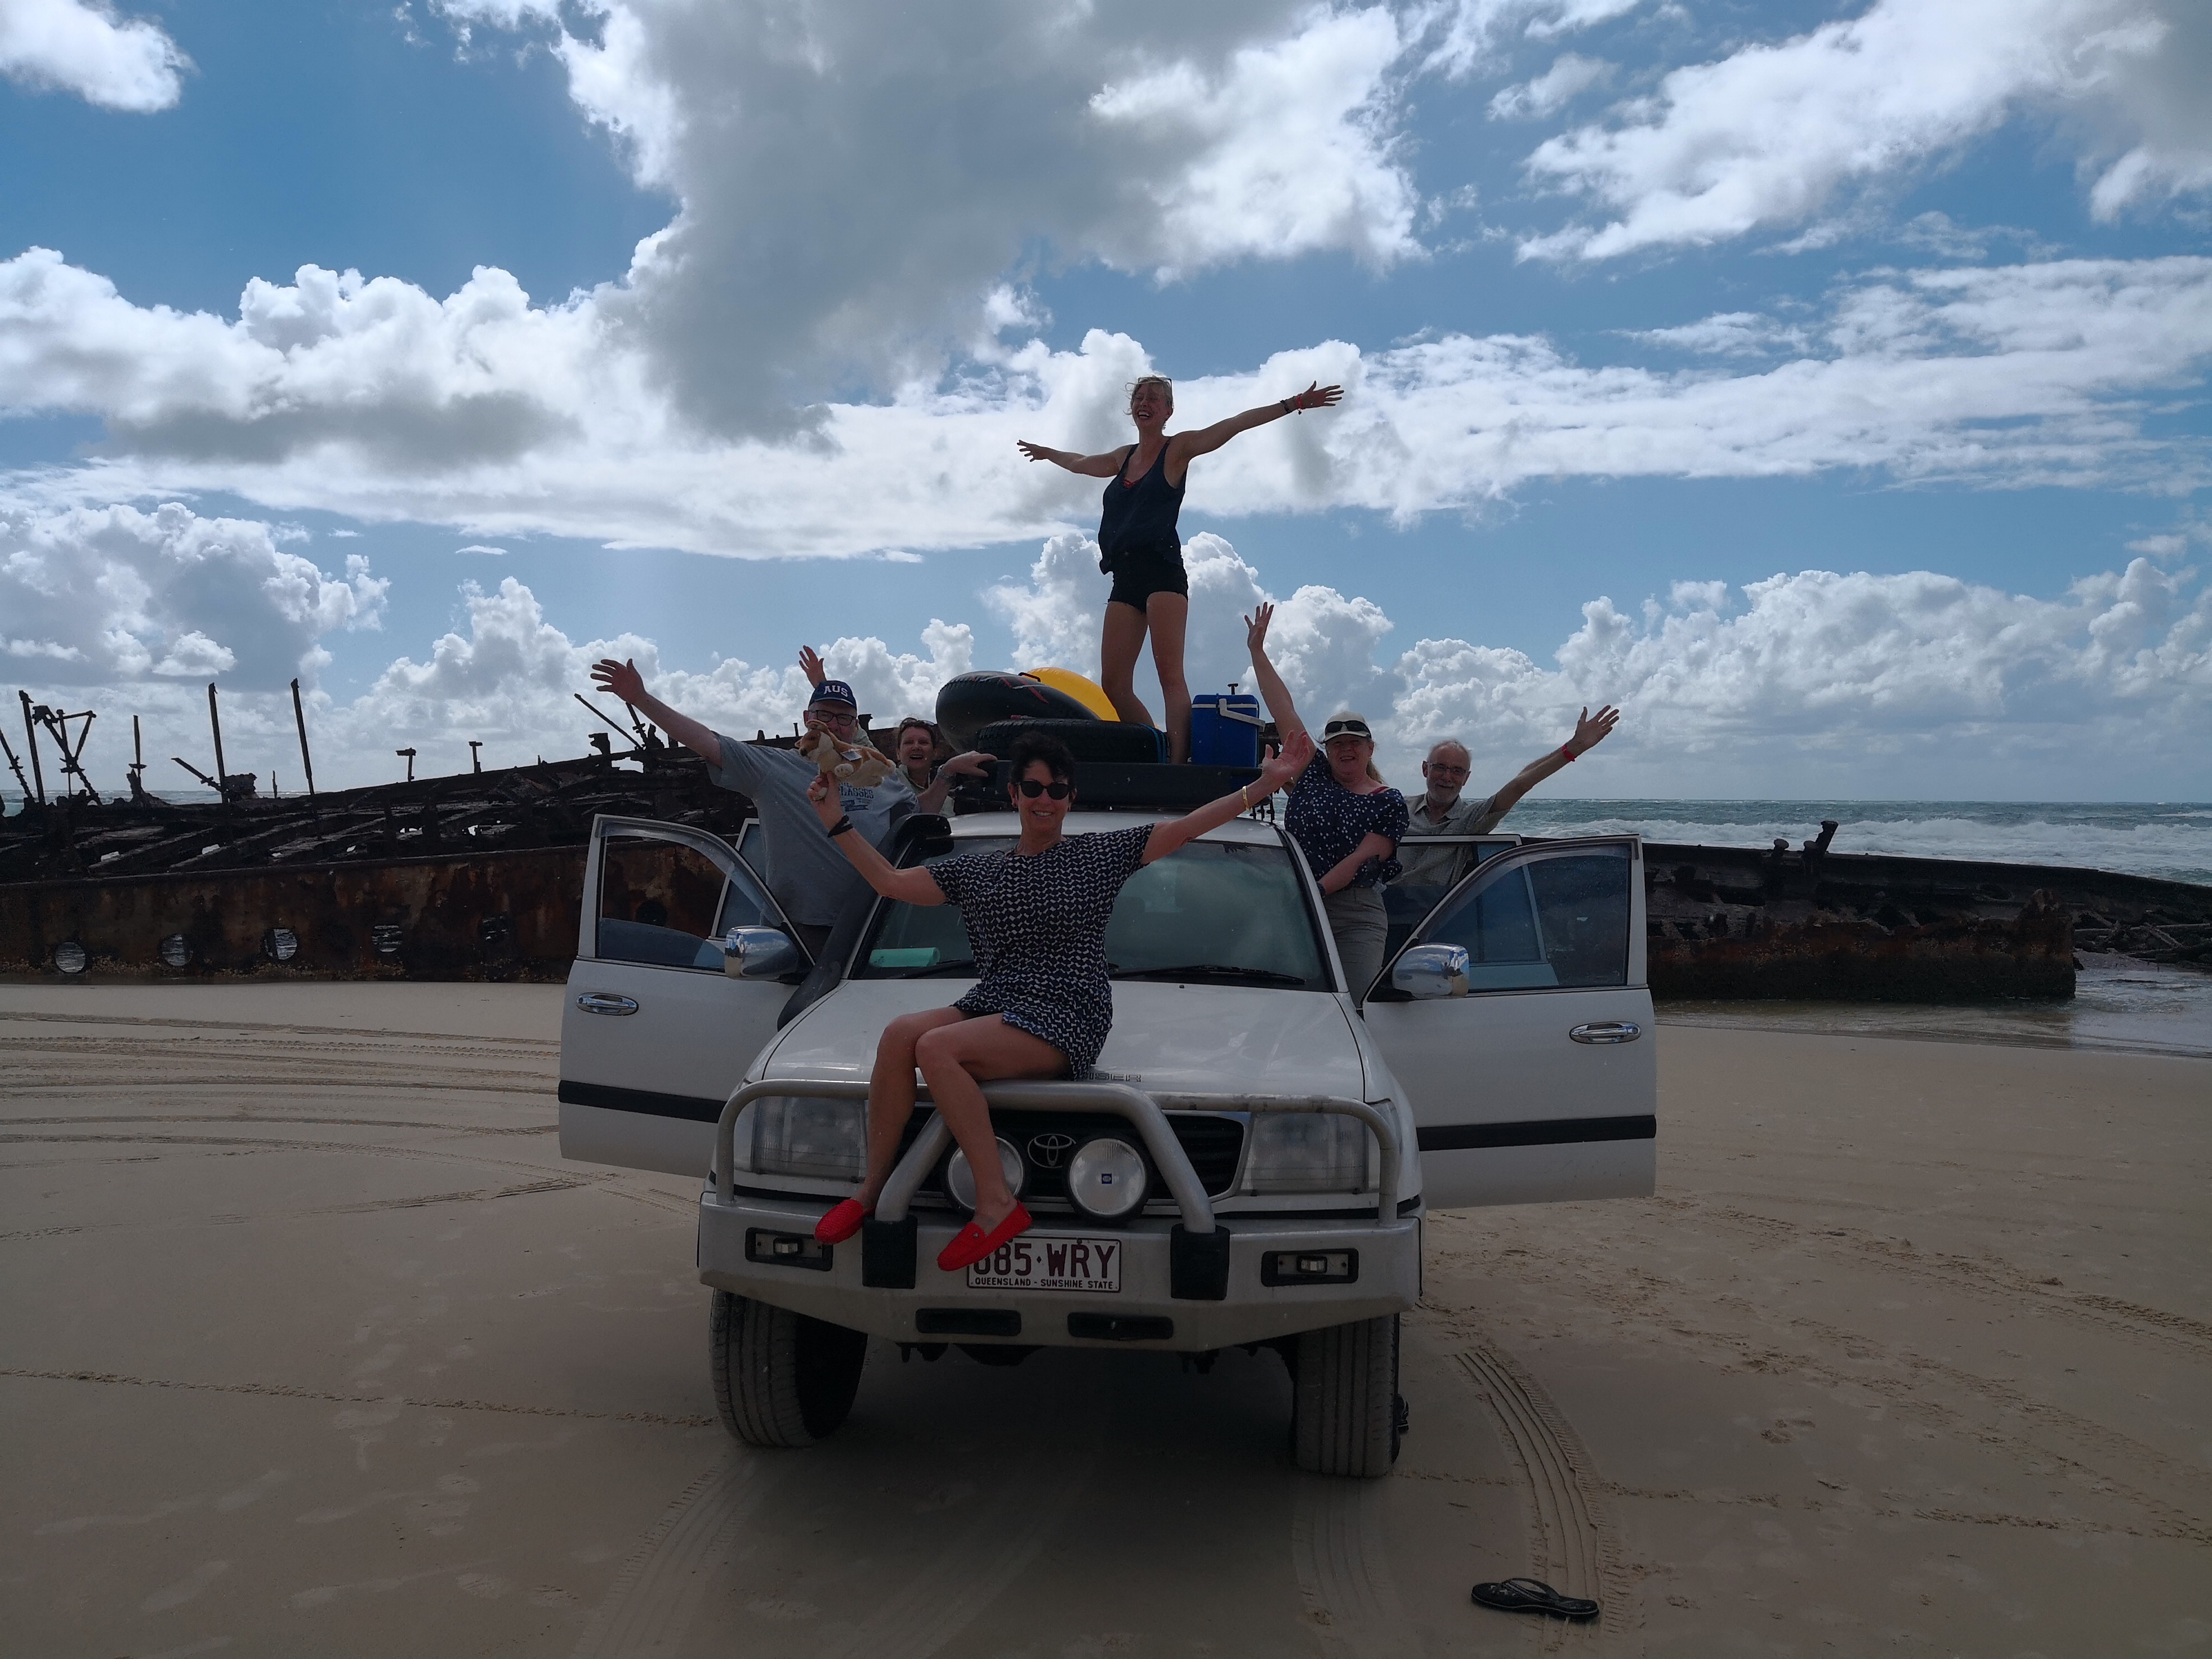 Our group all standing on the 4WD in front of the Maheno Shipwreck for a fun group photo